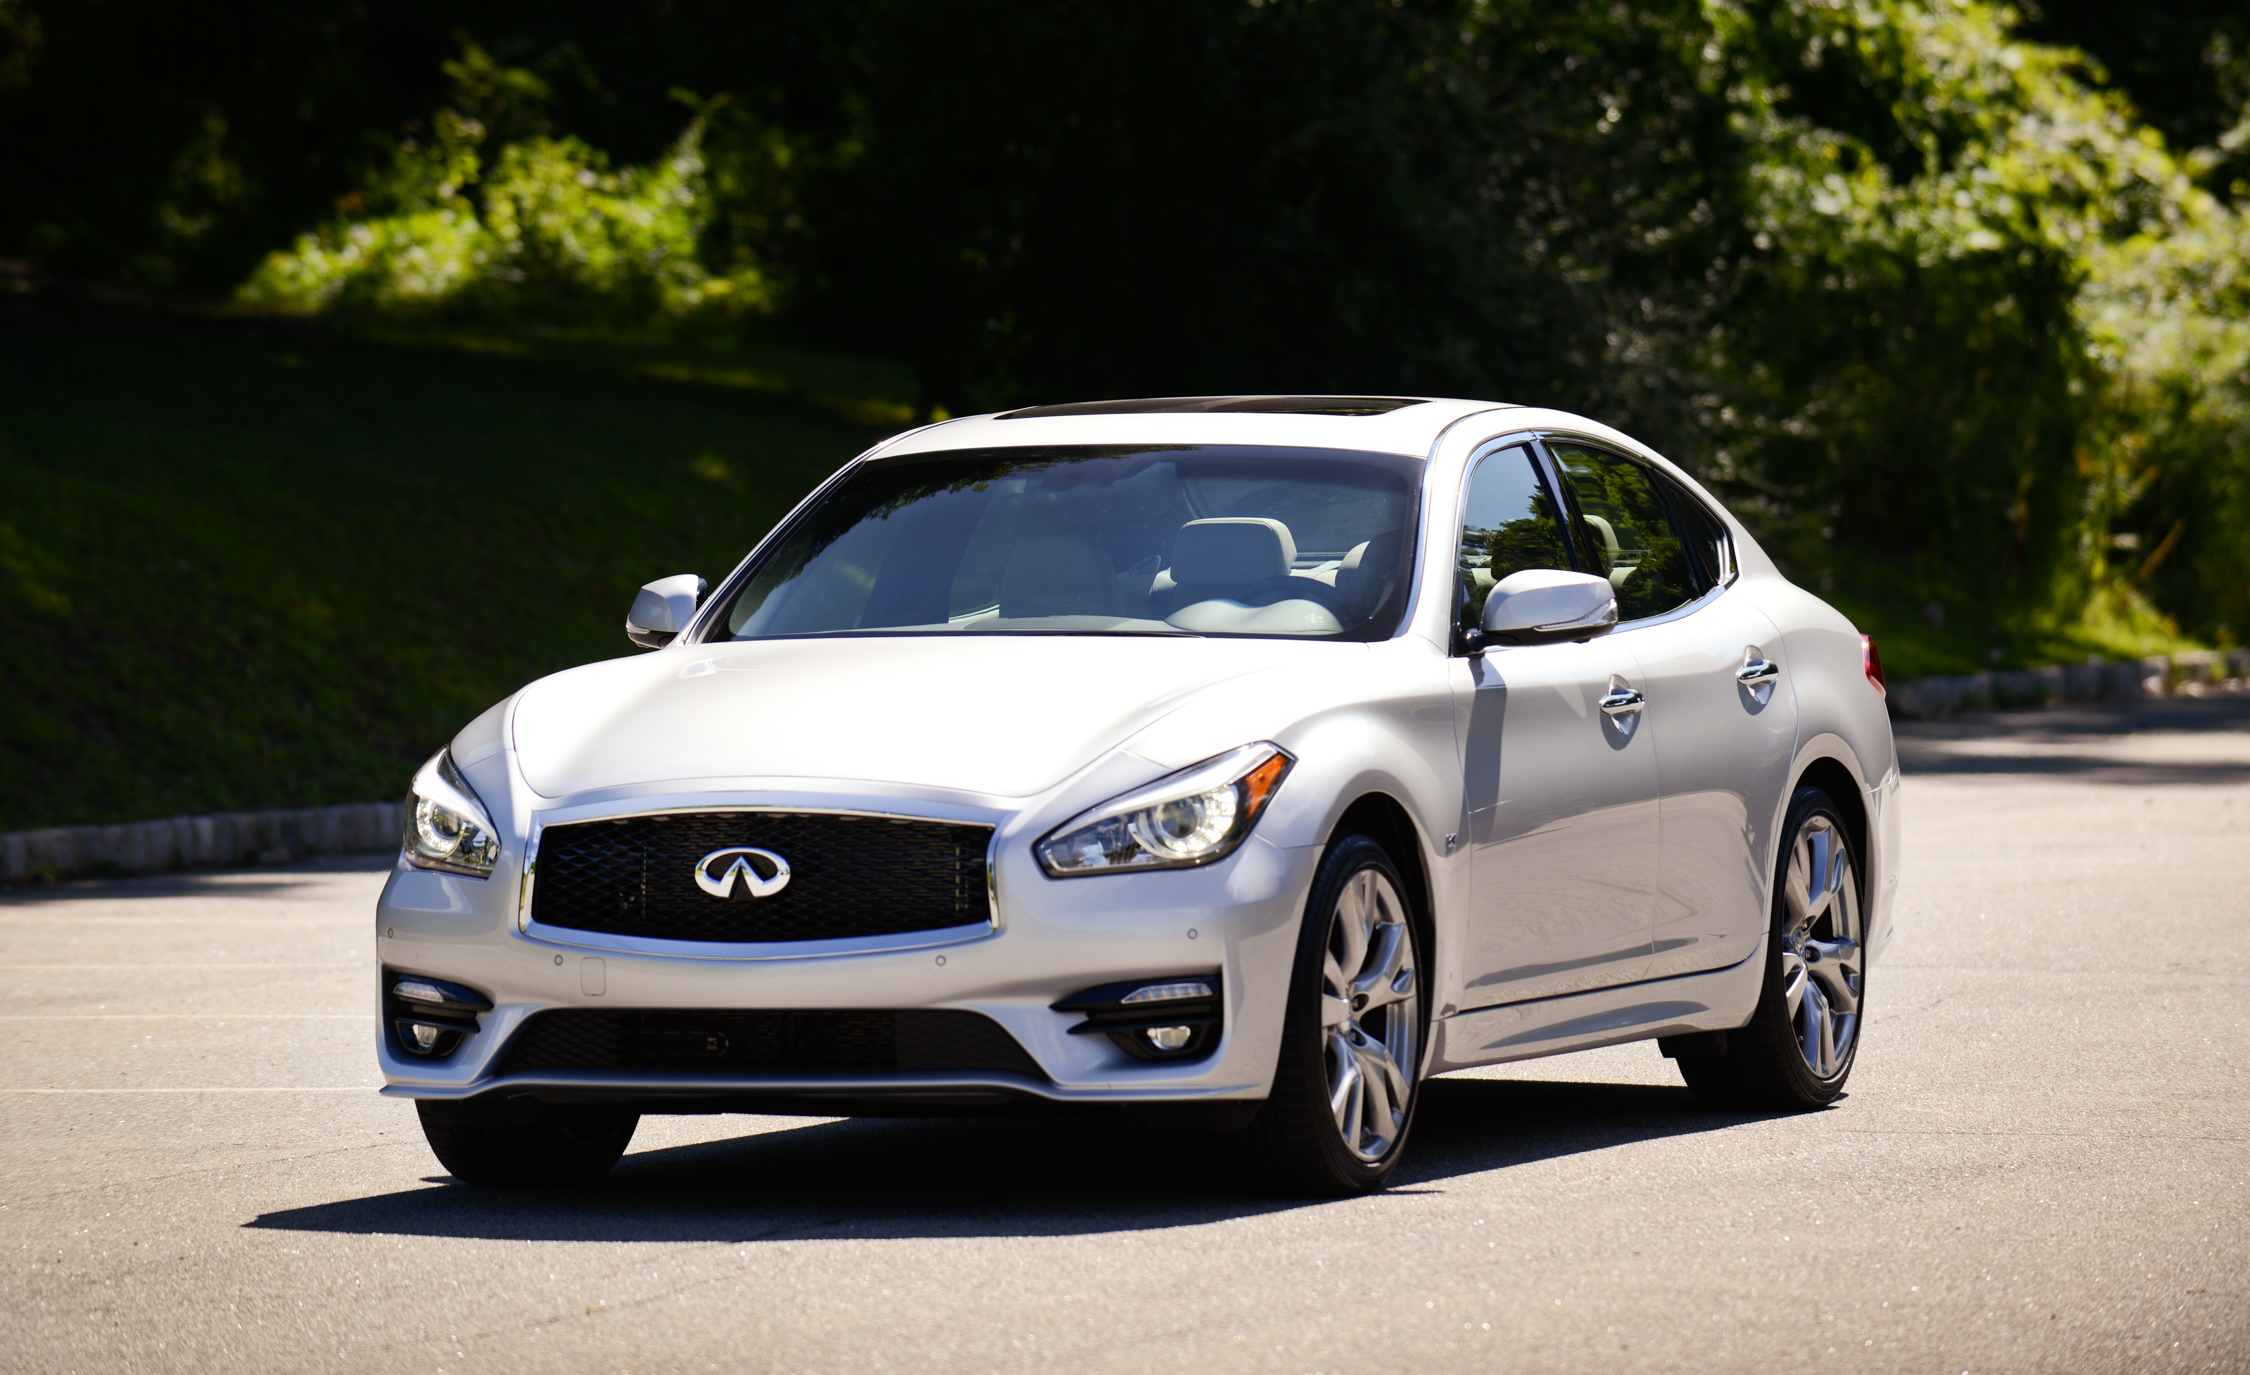 2015 Infiniti Q70L Pictures Gallery (10 Images)